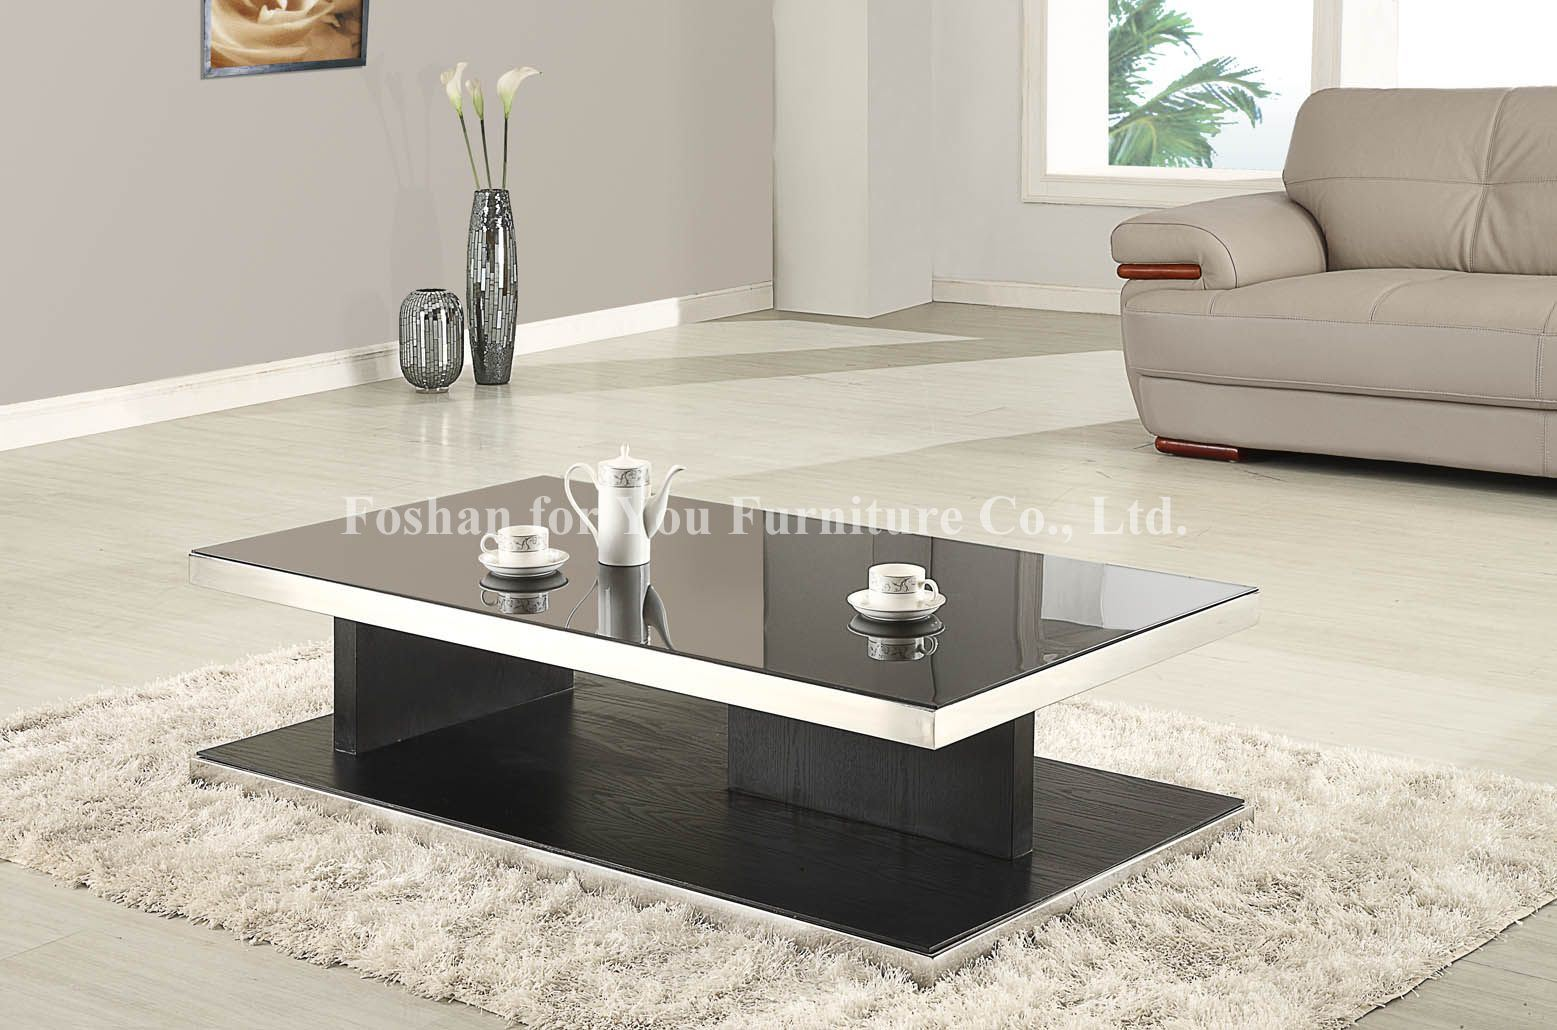 China Living Room Furniture Coffee Table T351l China